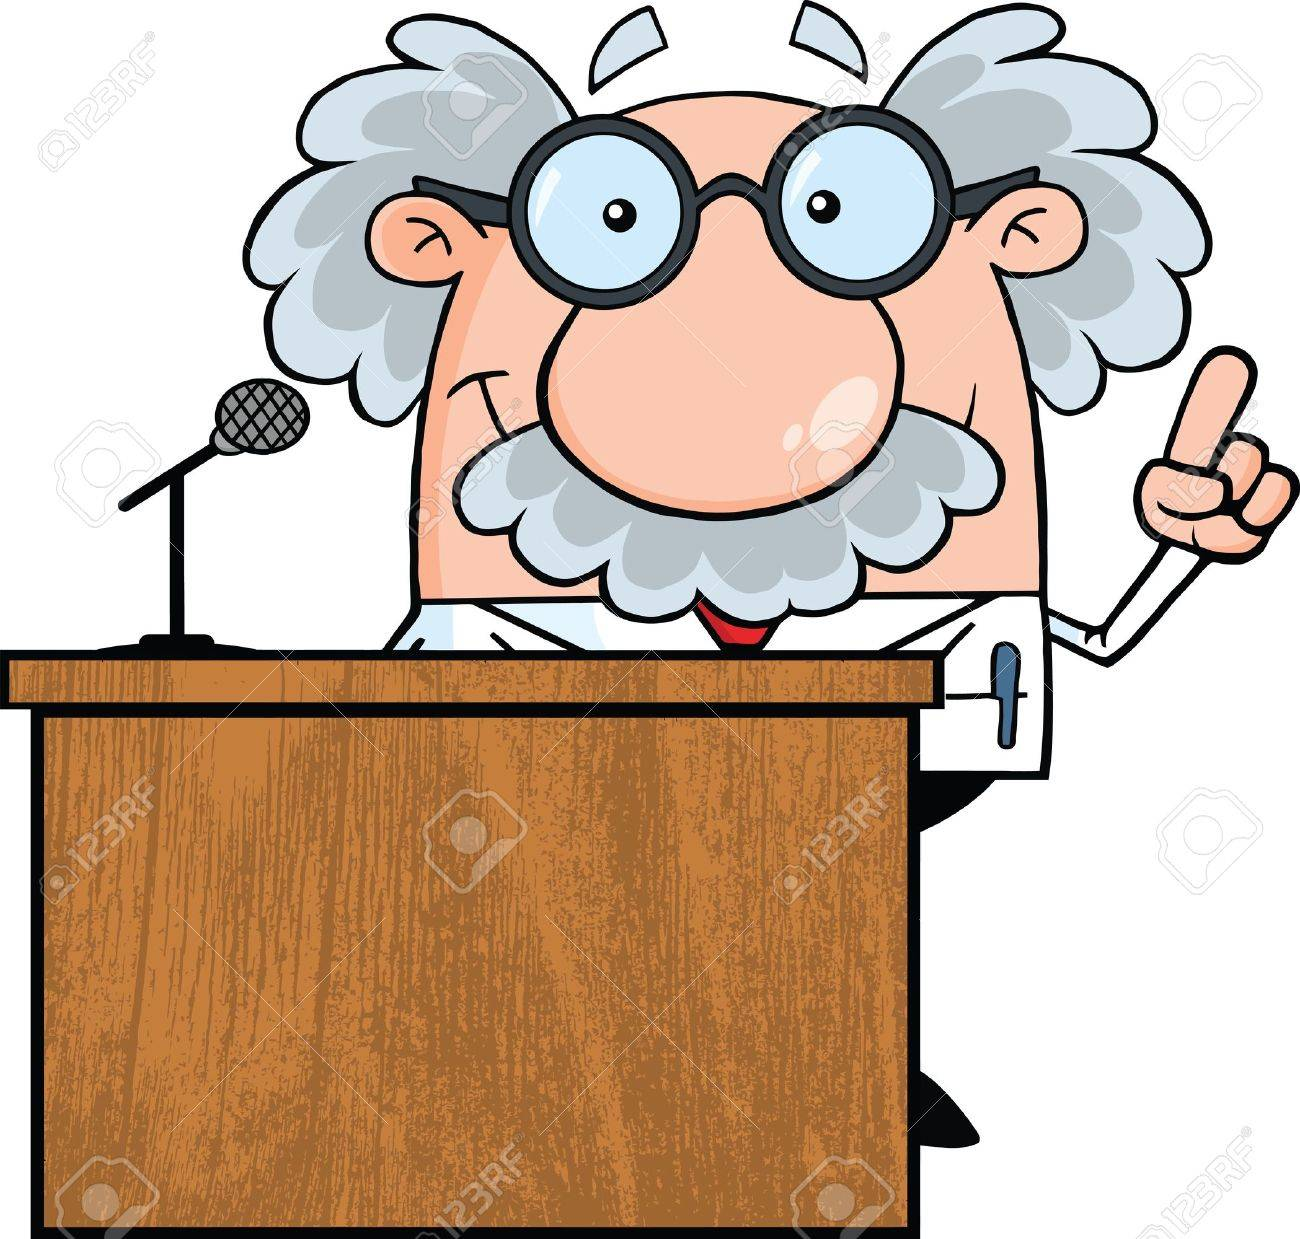 Smiling Scientist Or Professor Present From Podium Stock Vector - 21699407